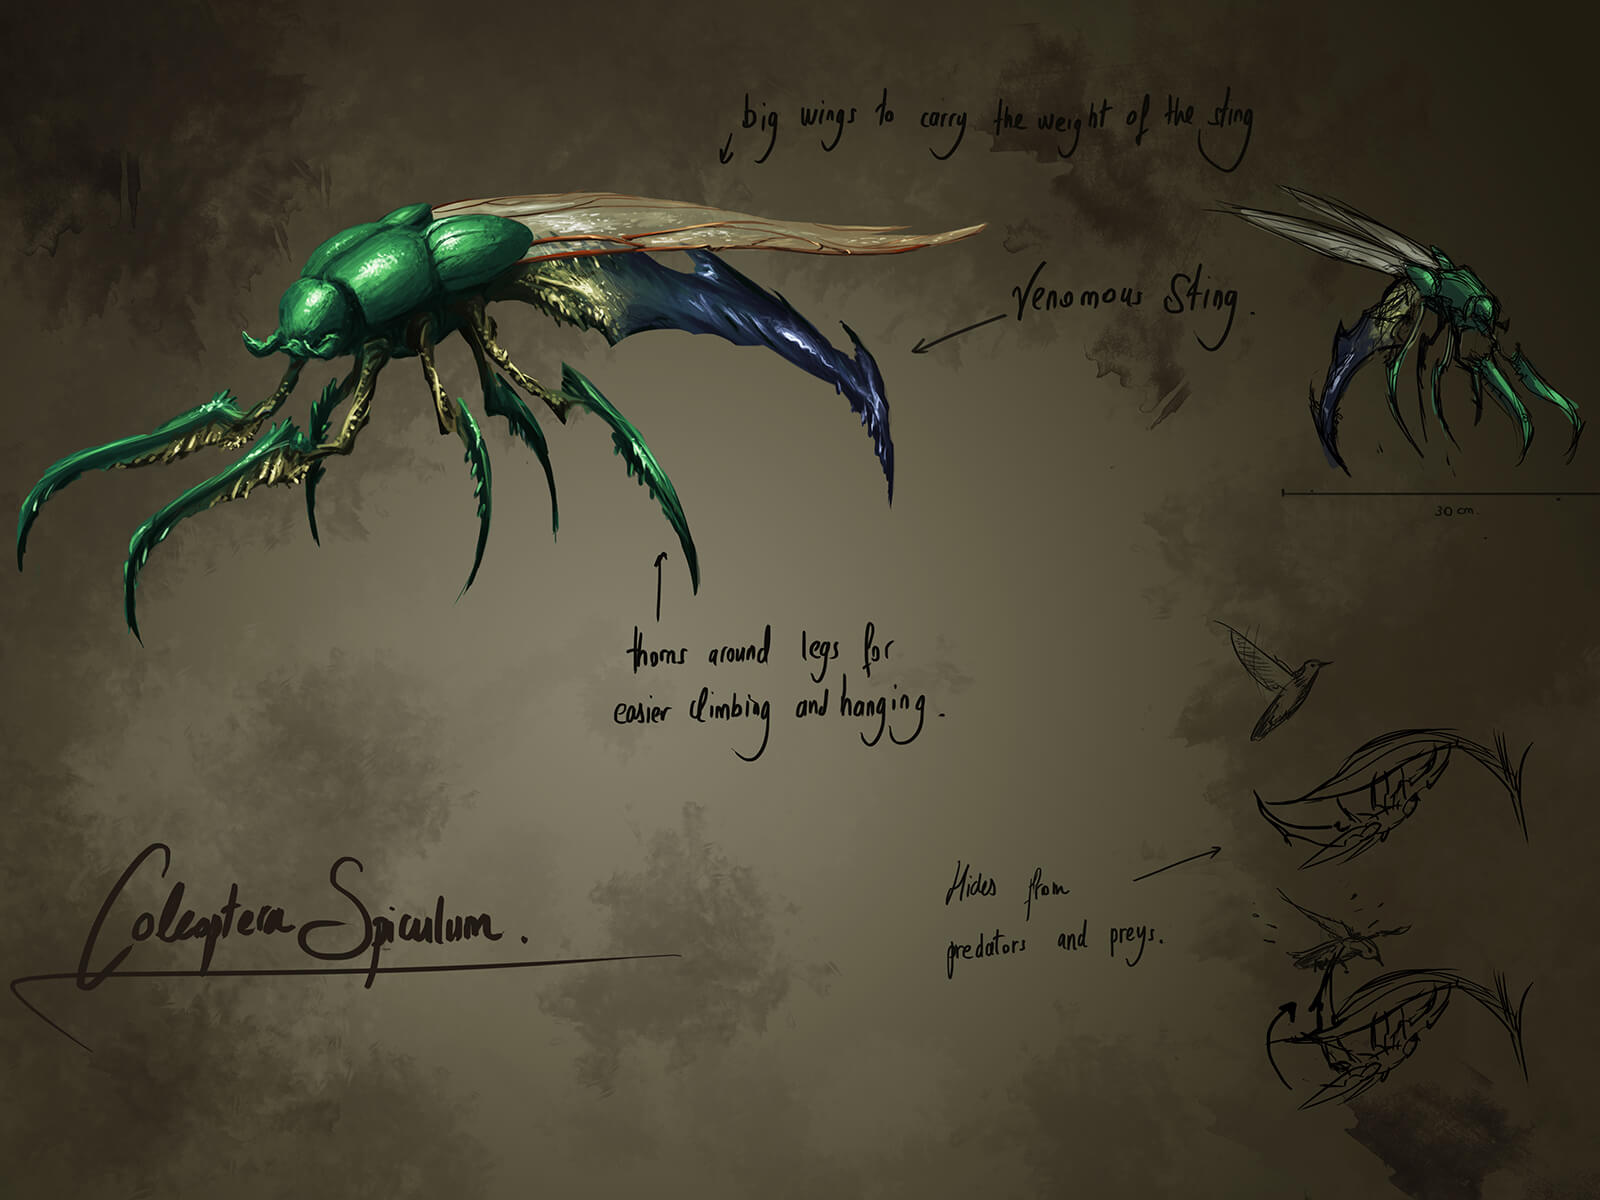 Concept art of a green, alien beetle with long, talon-like legs and a fearsome blue stinger protruding from behind.